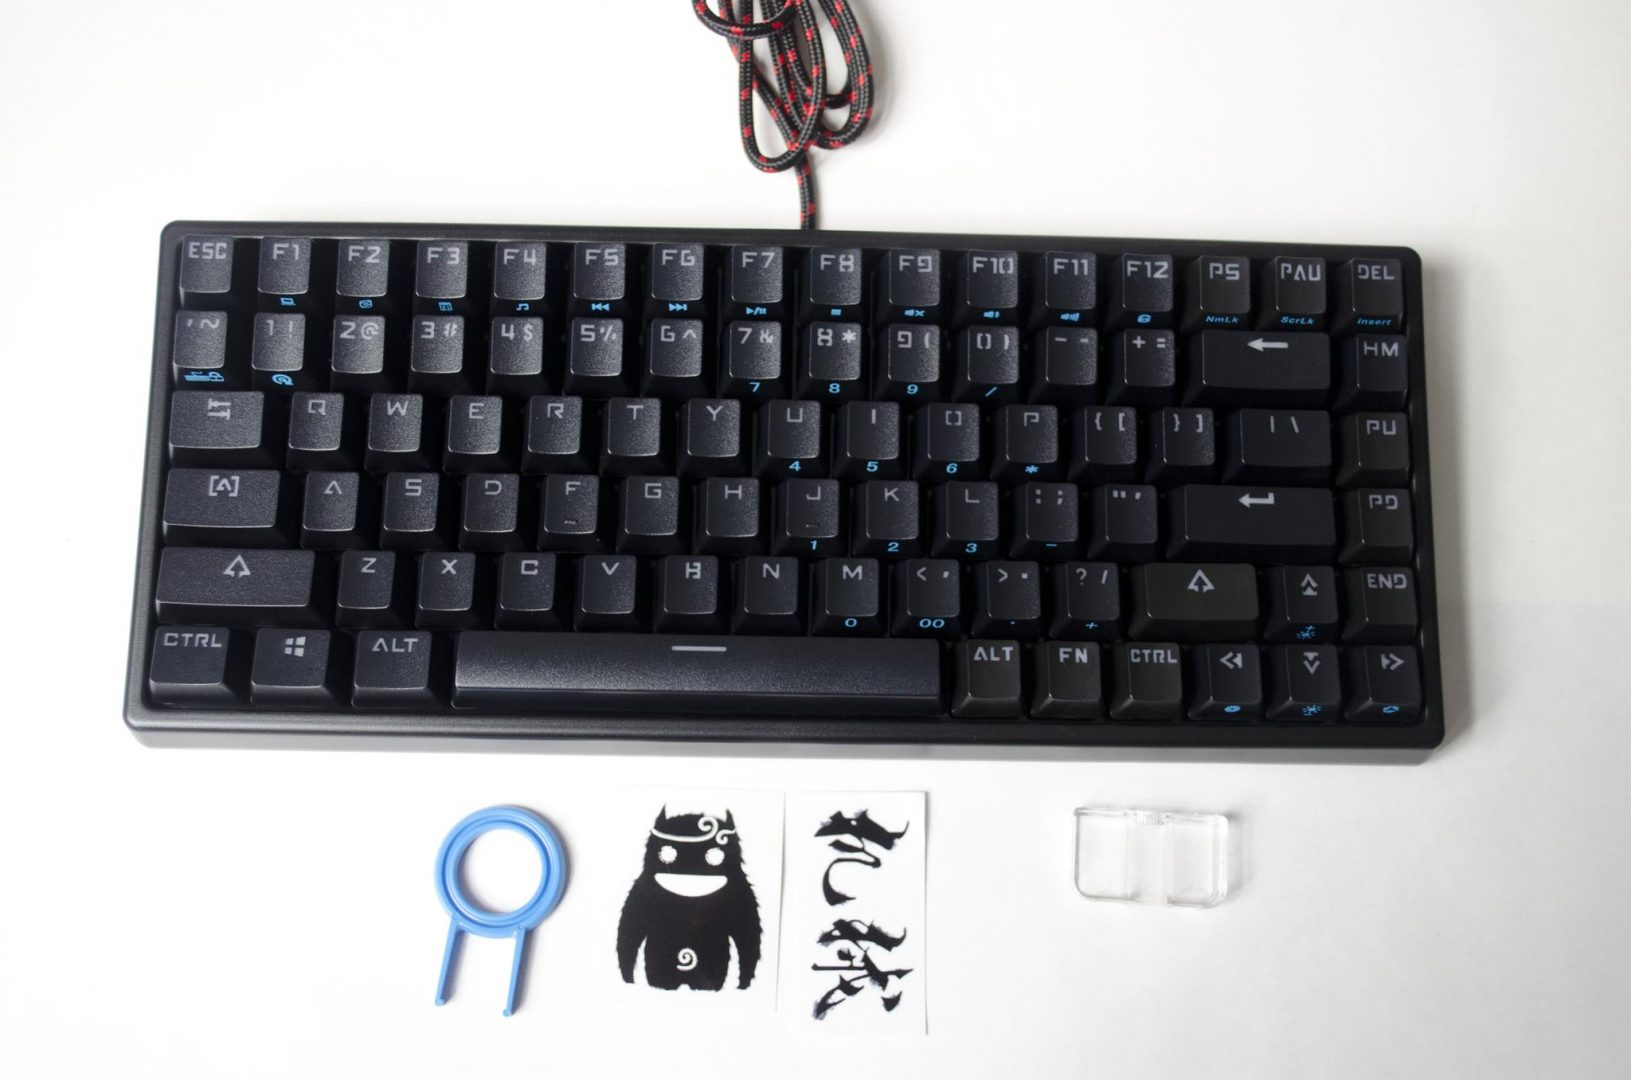 drevo gramr keyboard review_1